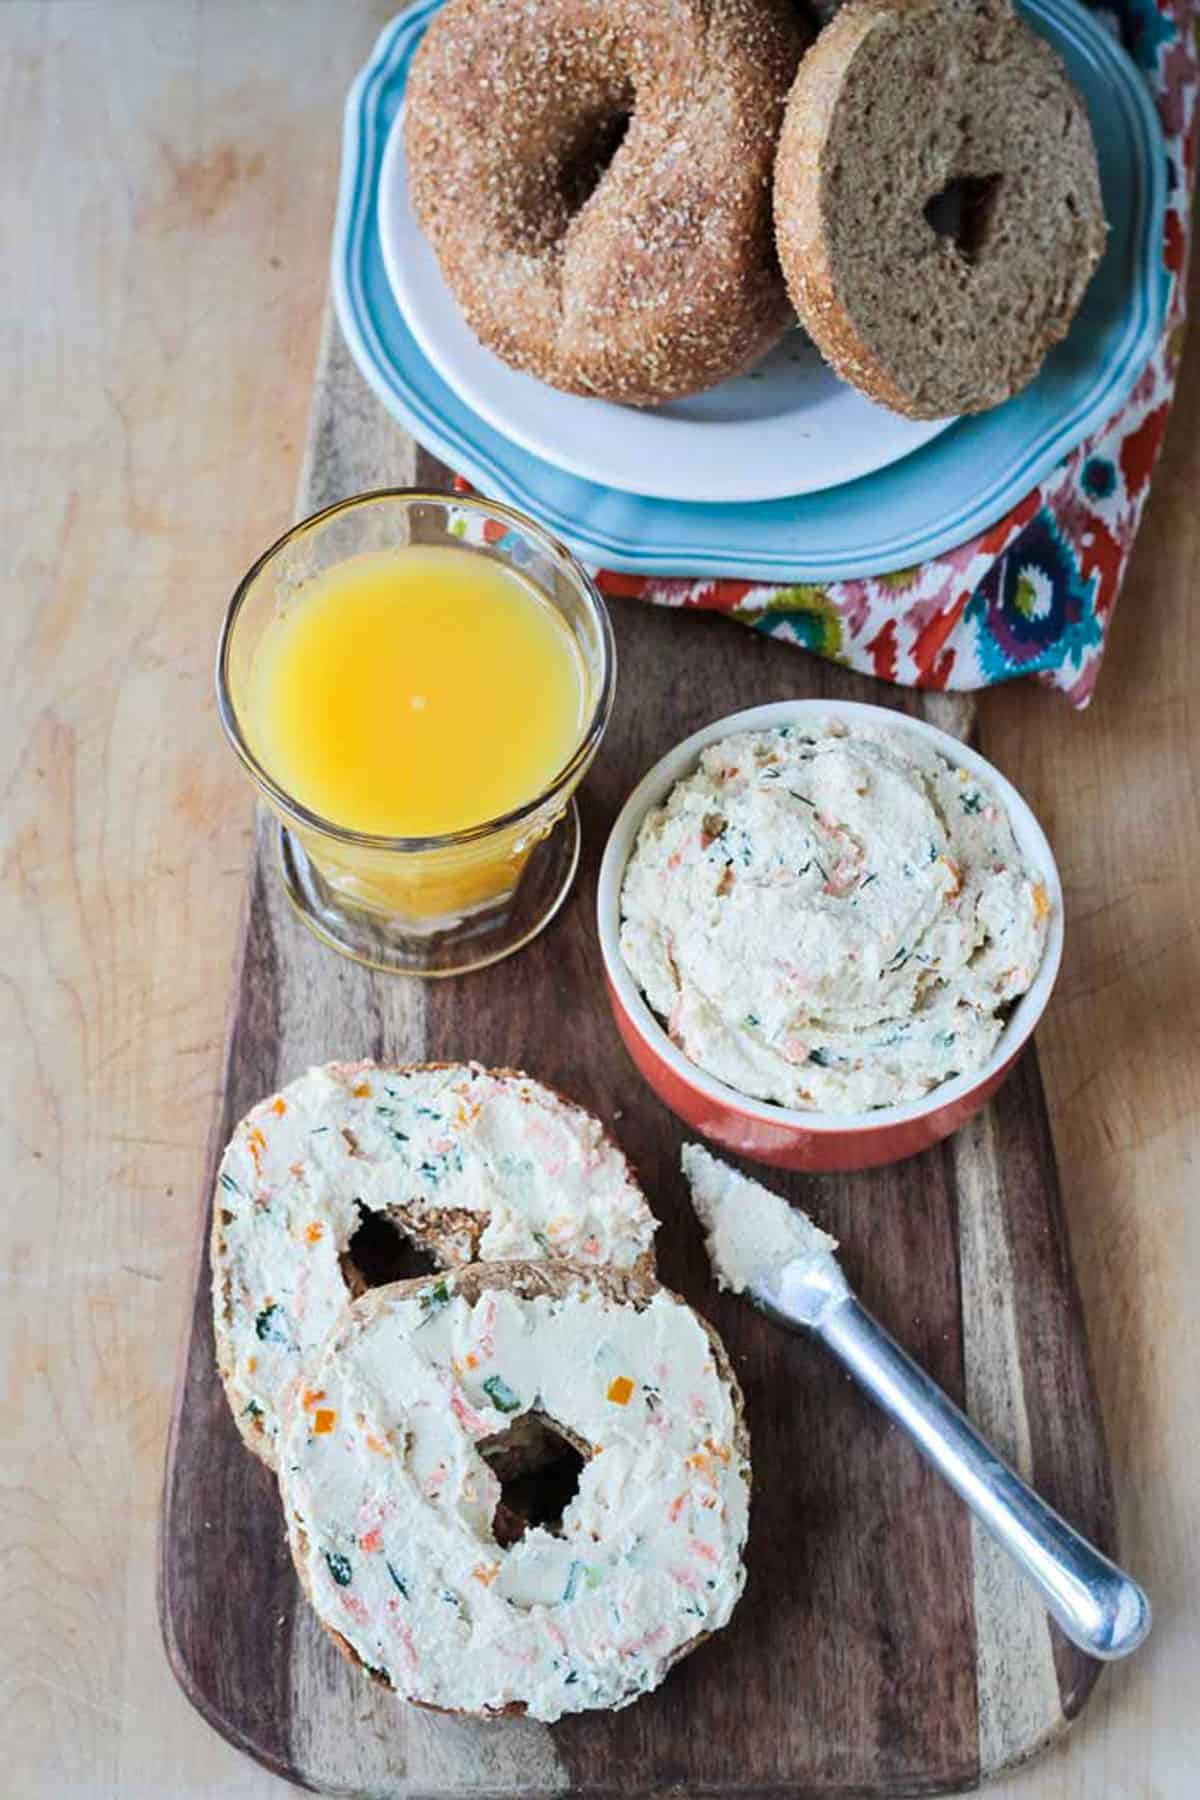 Plate of bagels next to a glass or orange juice and two bagel halves with veggie spread.